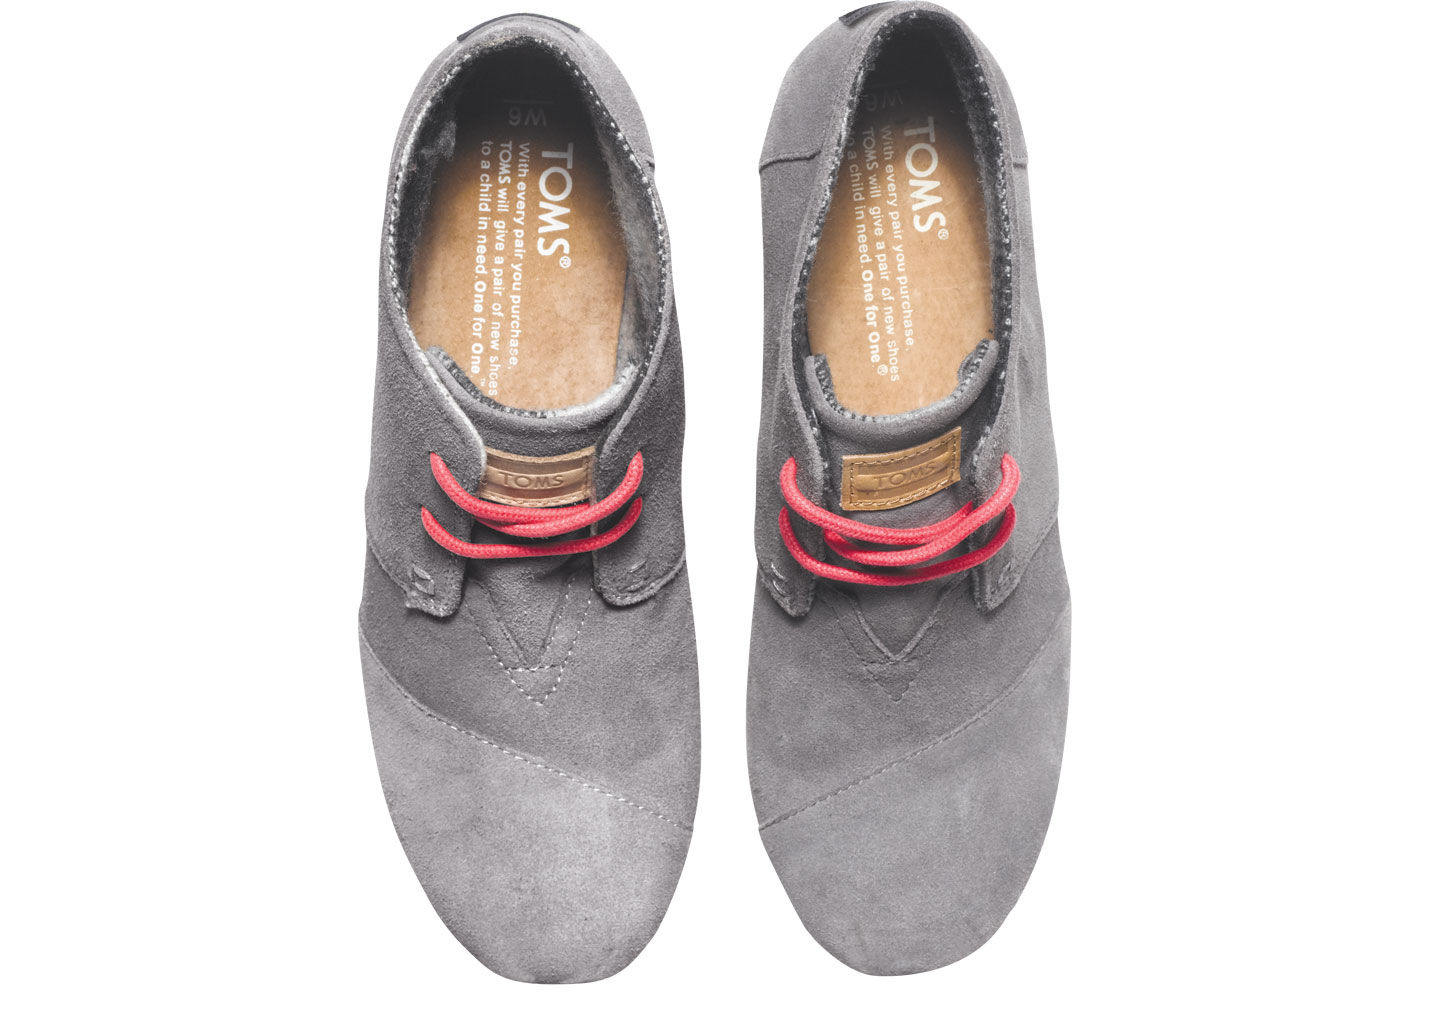 6291d4a4629 Lyst - TOMS Charcoal Suede Women S Desert Wedges in Gray